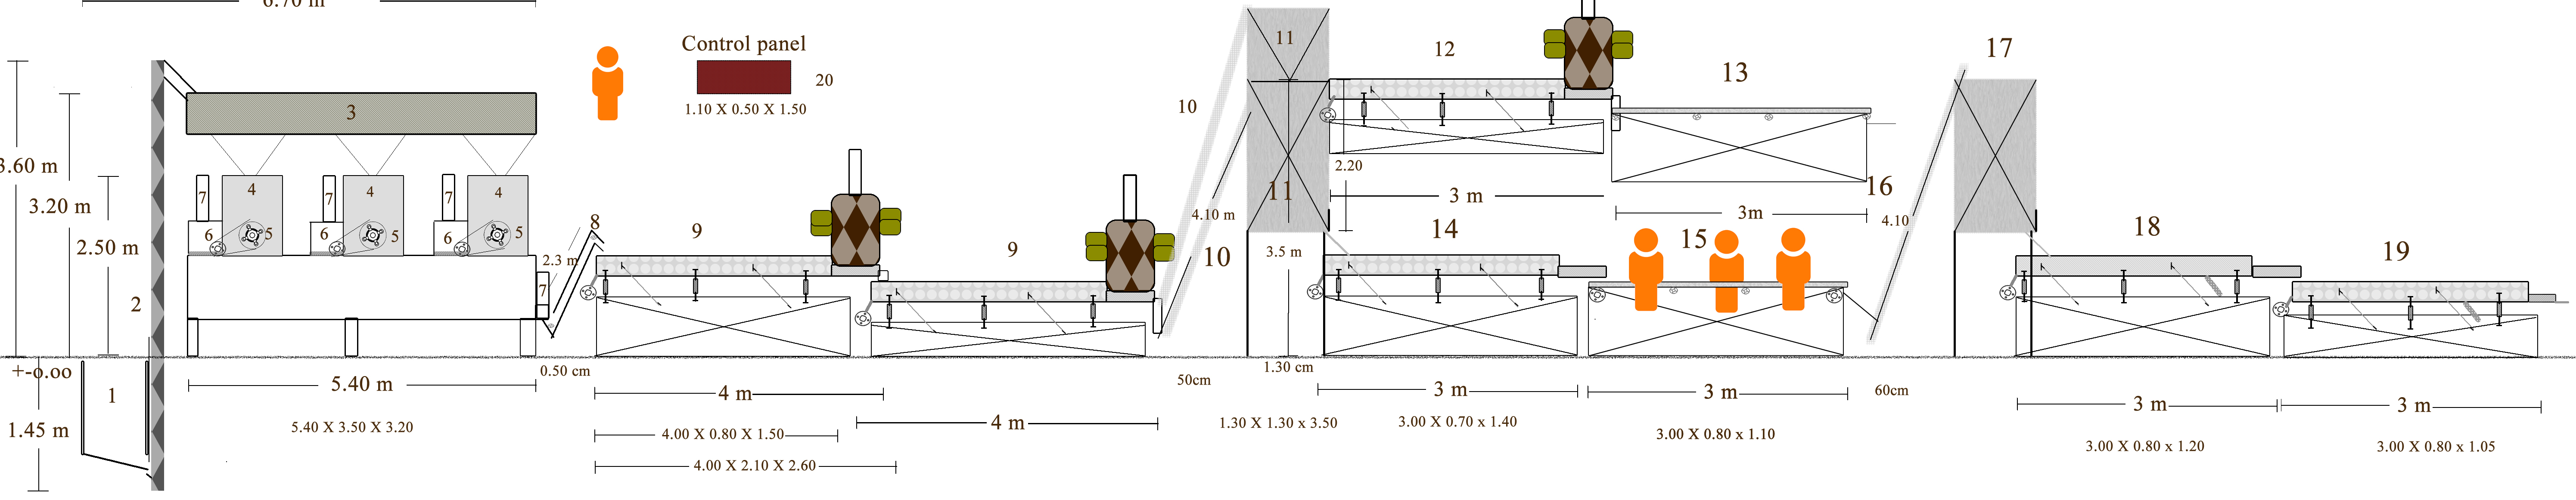 air aspirations, size separators, silos, picking/sorting tables, sizers  e t c the shelling lines can be merged with an almond sizing line